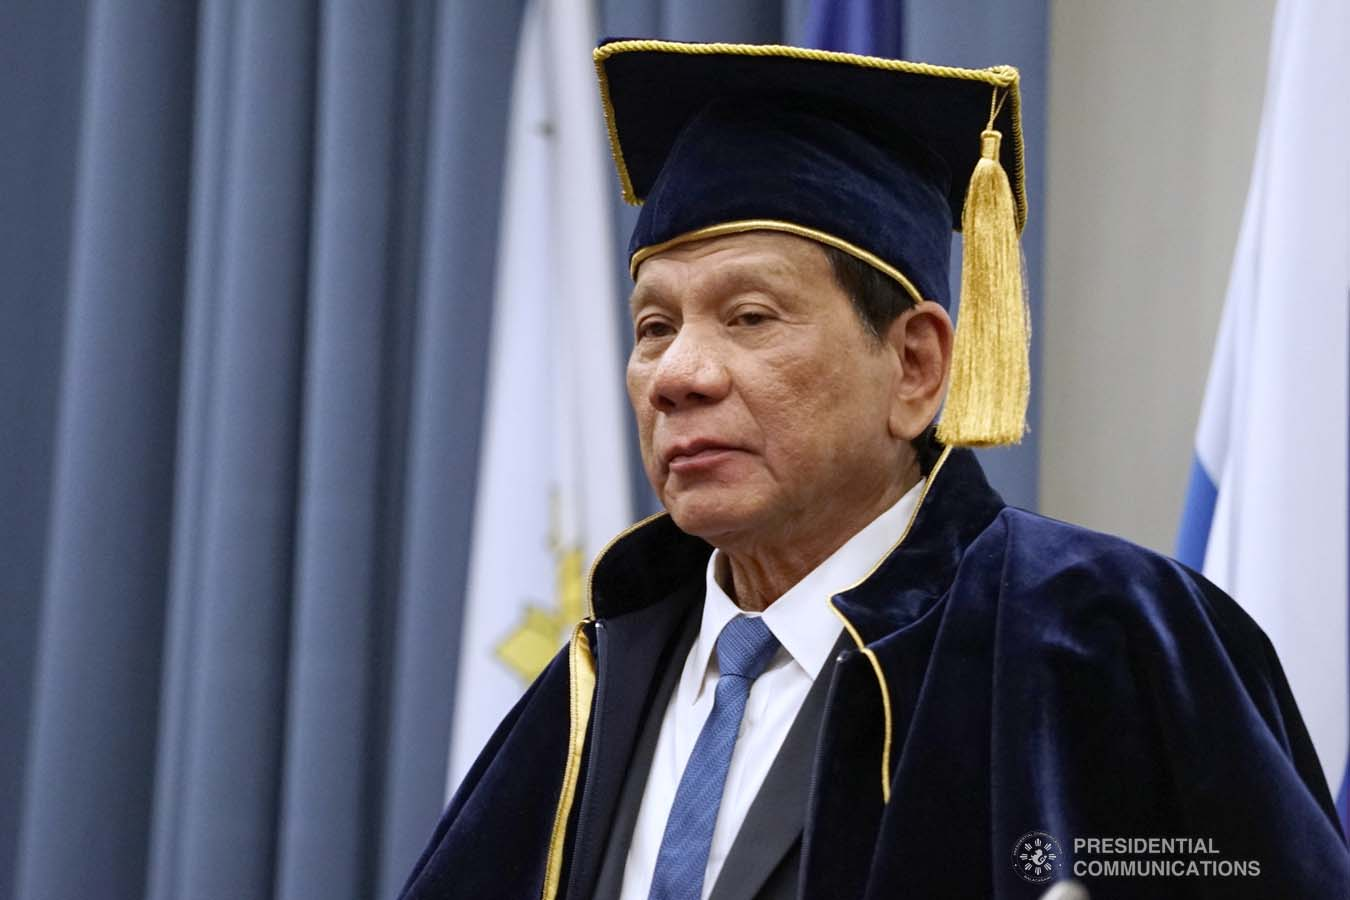 President Rodrigo Roa Duterte dons the robe and toga after receiving an honorary doctorate degree diploma from Moscow State Institute of International Relations (MGIMO) University Vice Rector Artem Malgin during a ceremony at the MGIMO University in Moscow, Russian Federation on October 05, 2019. JOEY DALUMPINES/PRESIDENTIAL PHOTO